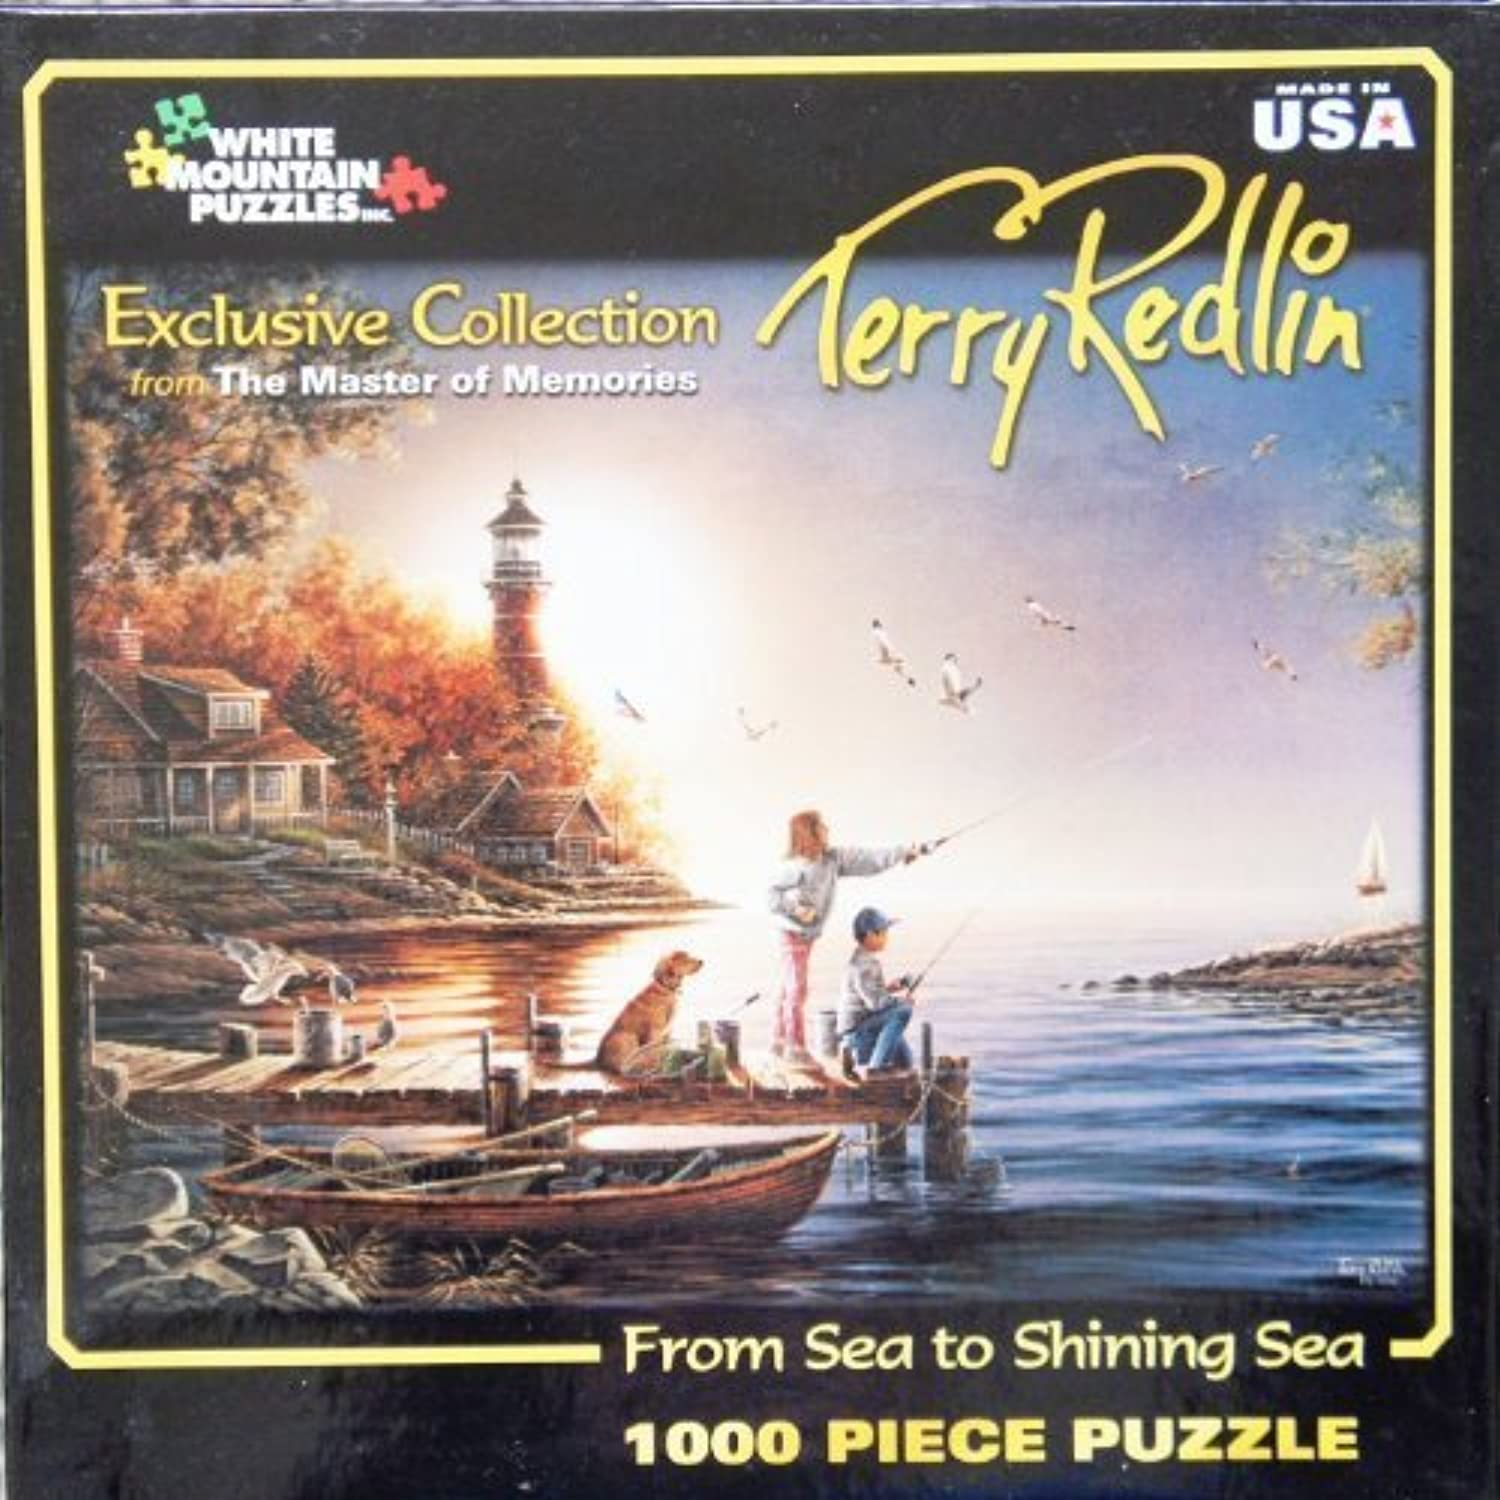 excelentes precios Terry rojolin The Master of of of Memories Art From Sea to Shining Sea 1000 Piece Jigsaw Puzzle MADE IN USA Puzzle by Terry rojolin Puzzle  diseño único